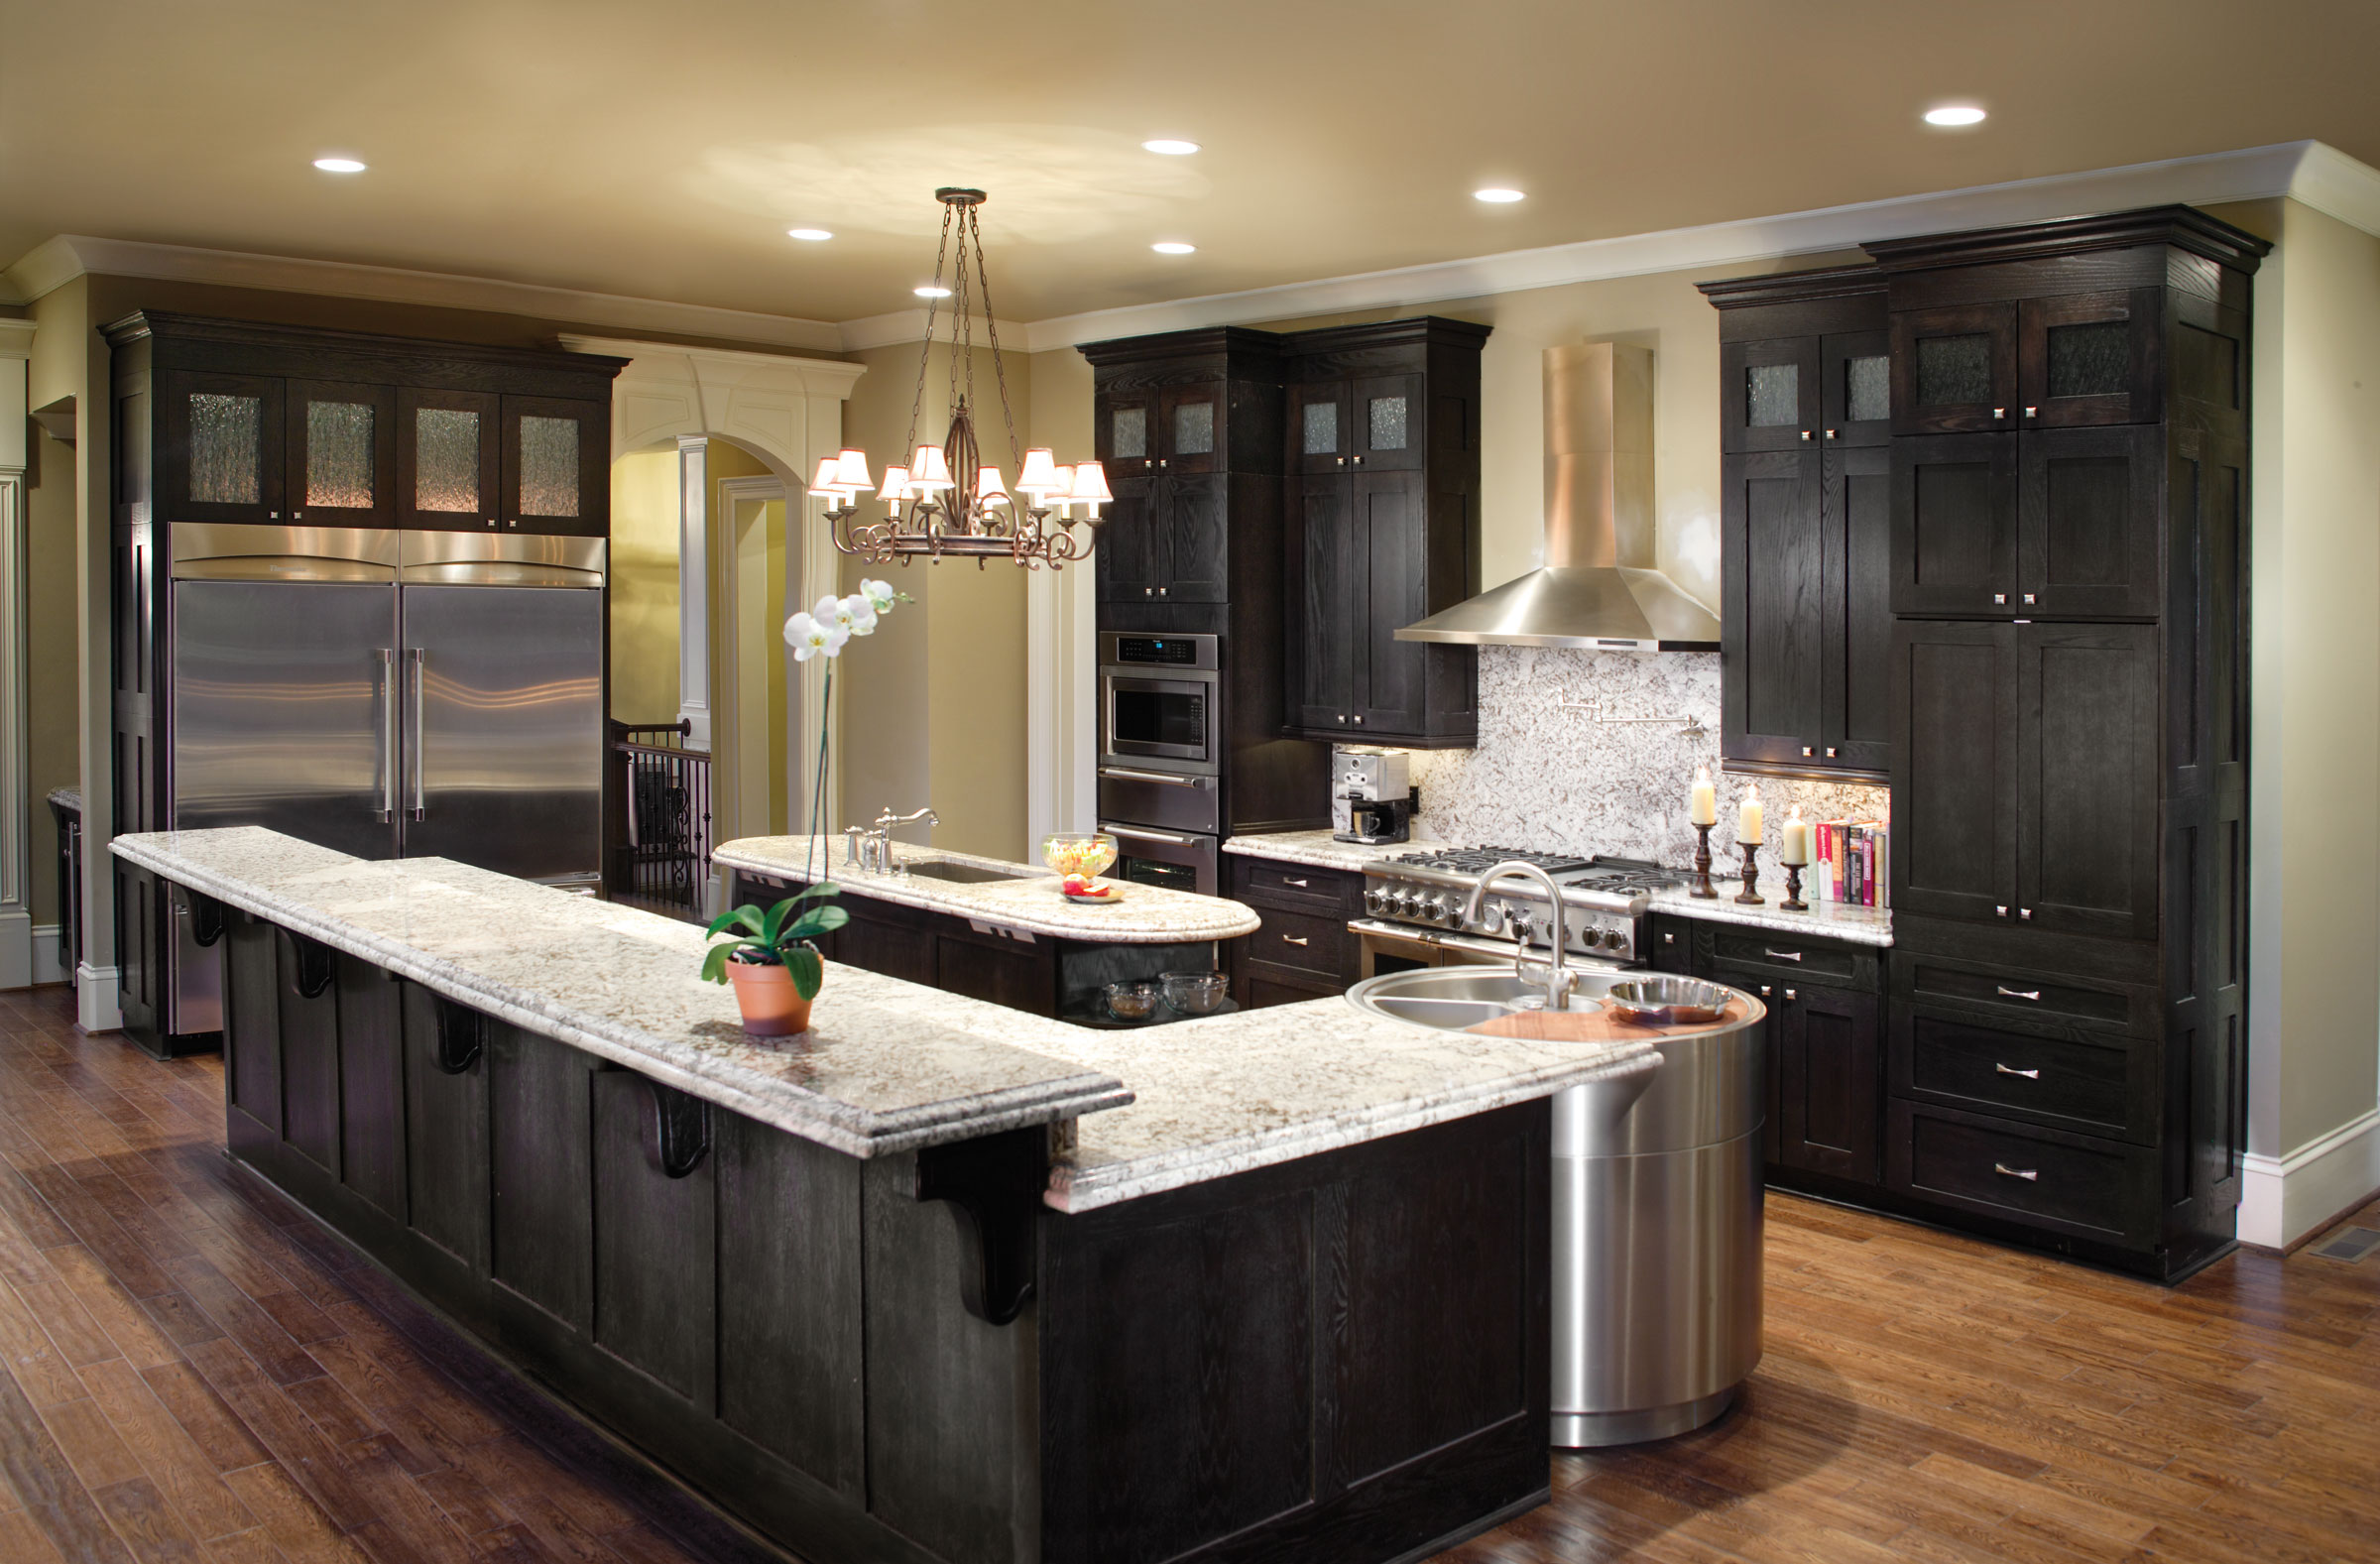 custom kitchen & bathroom cabinets company in phoenix, az